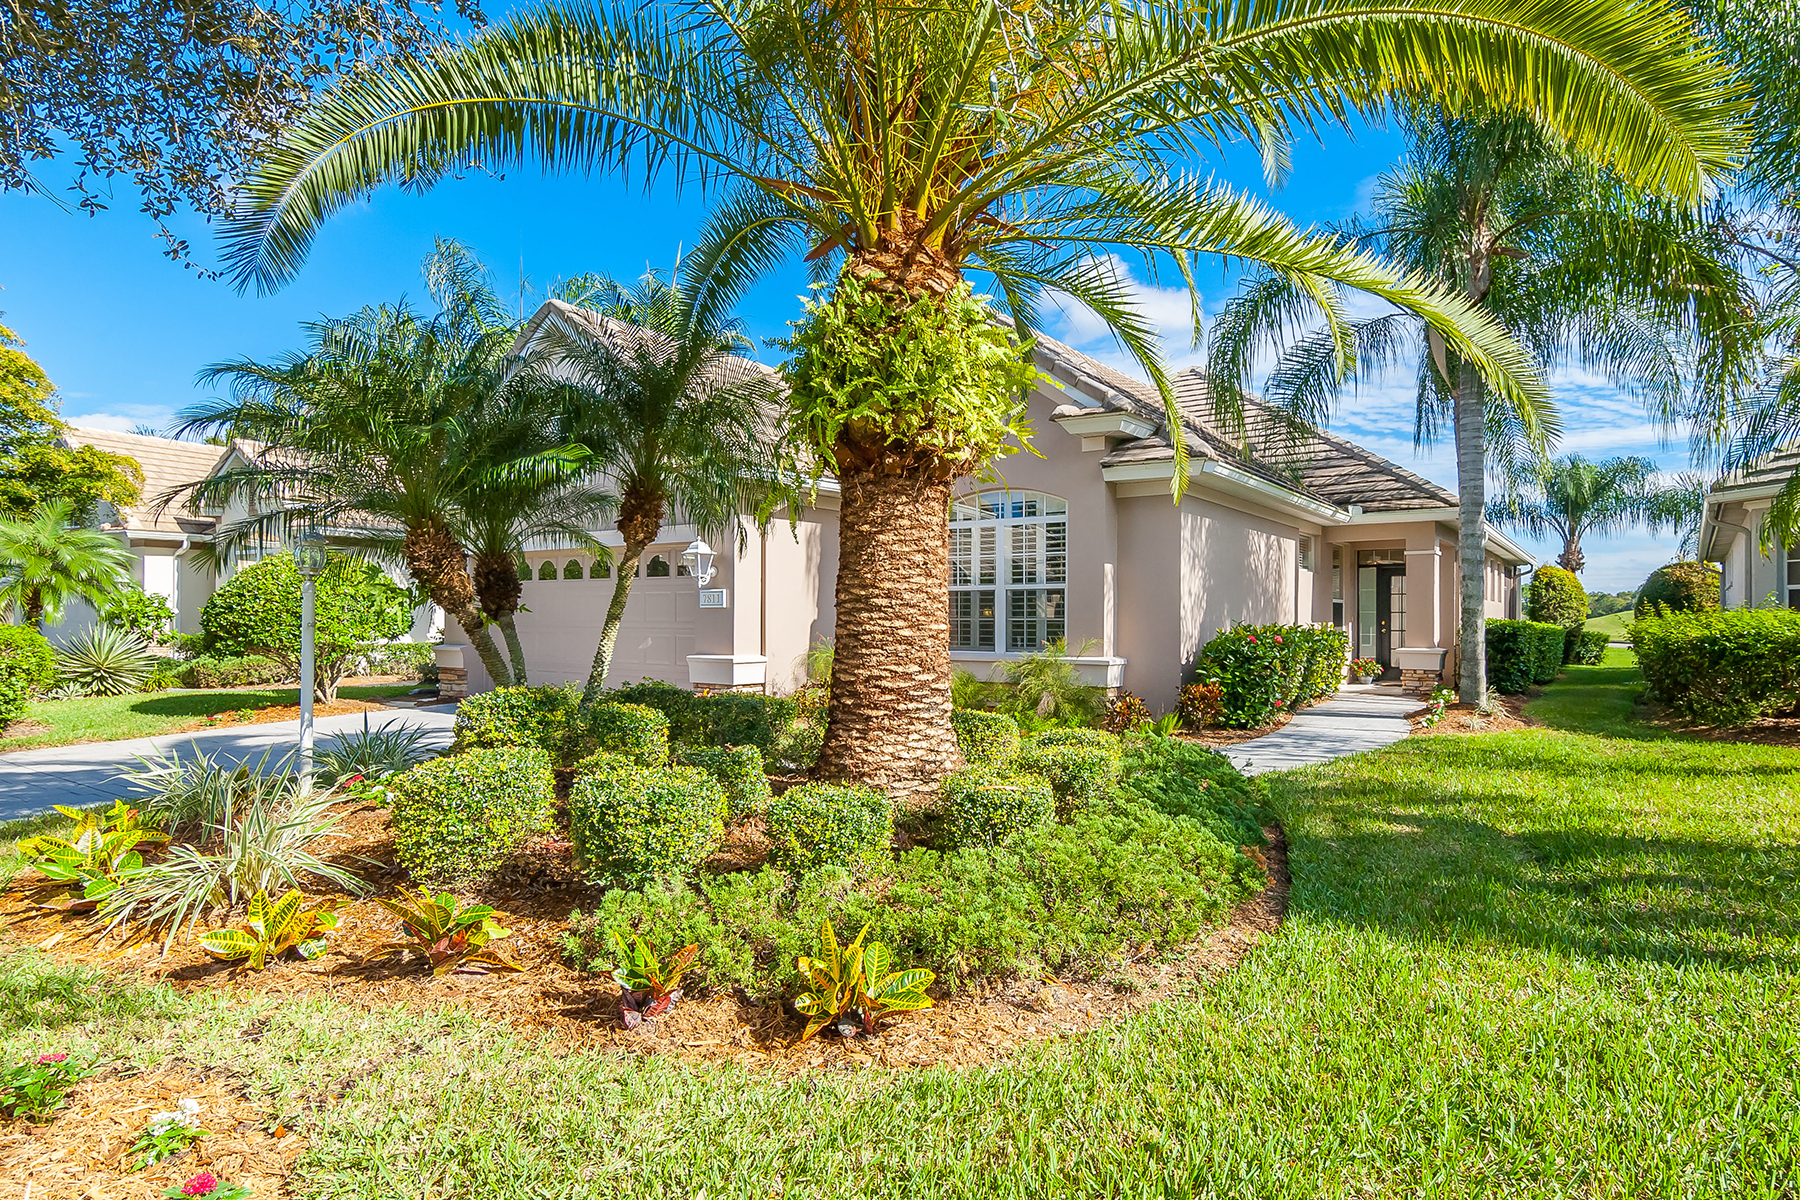 Single Family Home for Sale at LAKEWOOD RANCH COUNTRY CLUB 7811 Heritage Classic Ct Lakewood Ranch, Florida 34202 United States